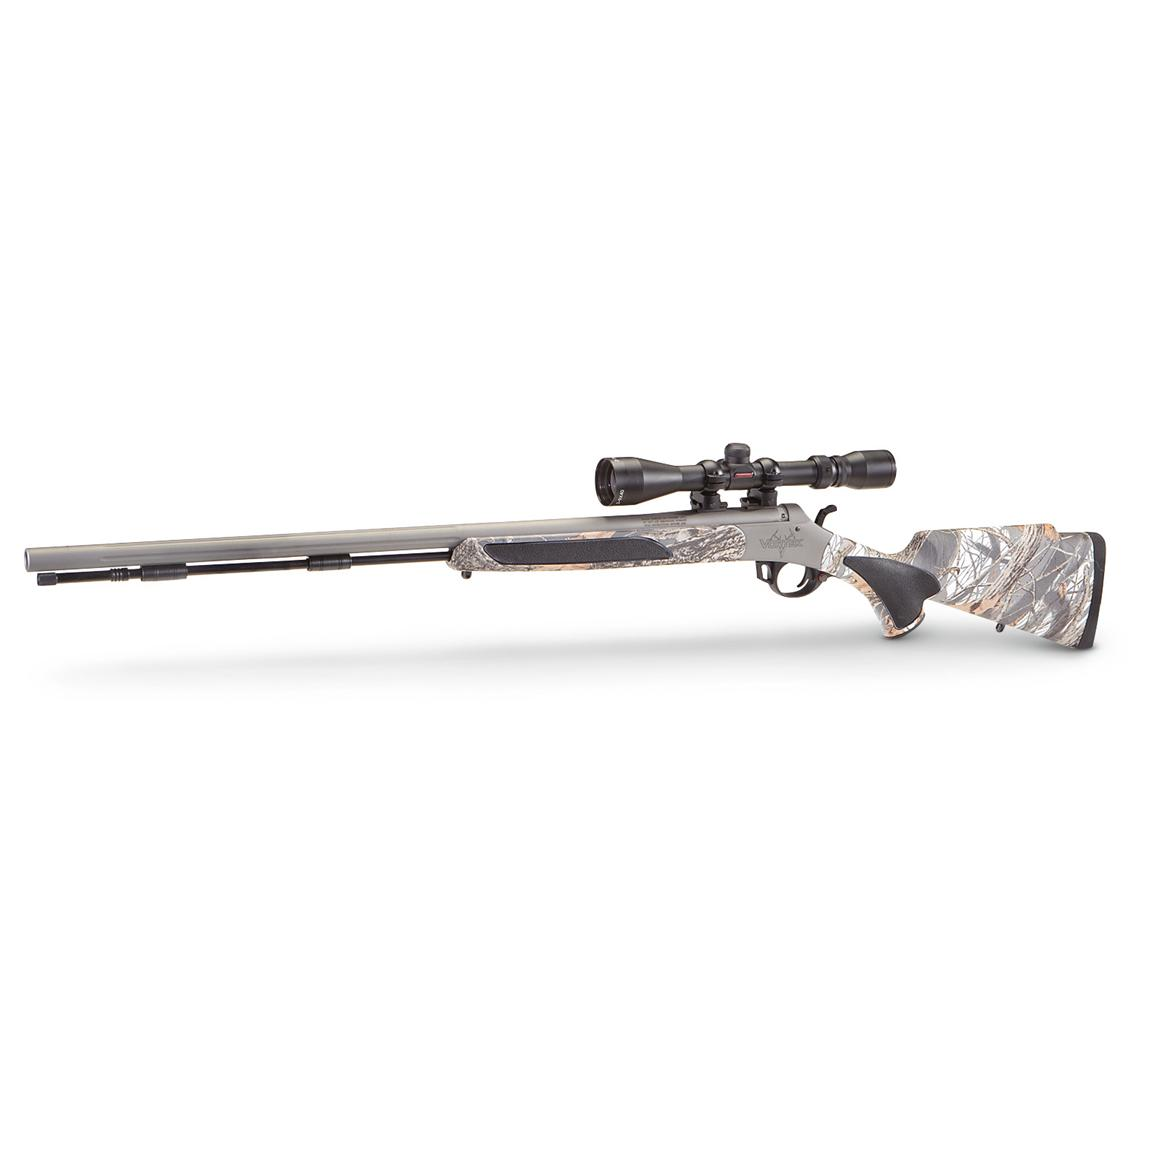 Traditions™ Vortek™ Ultralight .50 cal. Black Powder Rifle with 3-9x40 Scope, Snow Camo